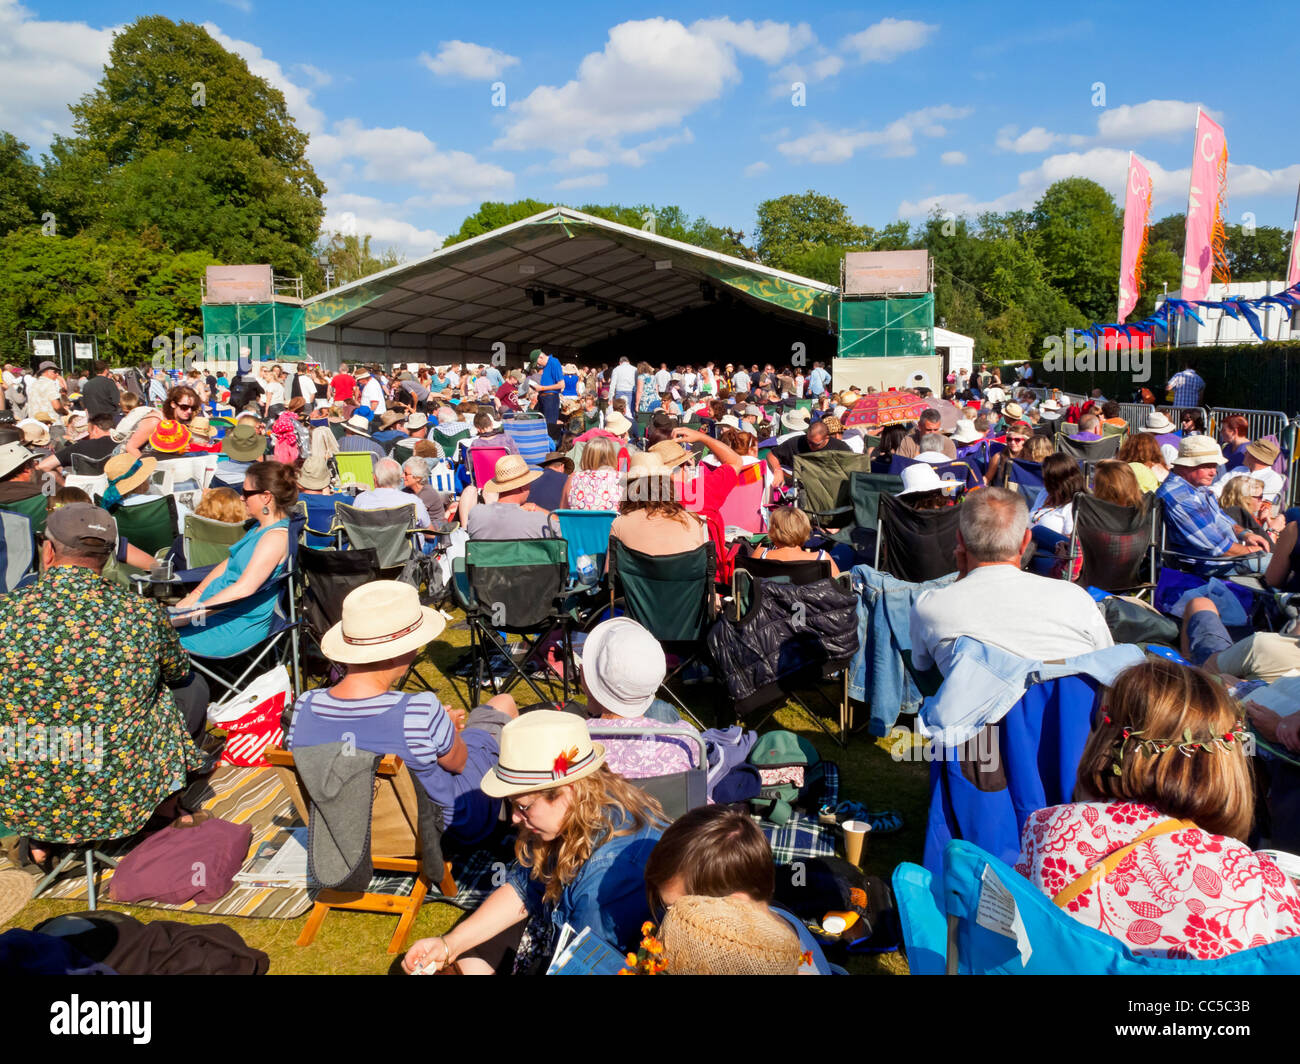 Crowd at the Cambridge Folk Festival held at the end of July each year at Cherry Hinton in the city of Cambridge - Stock Image